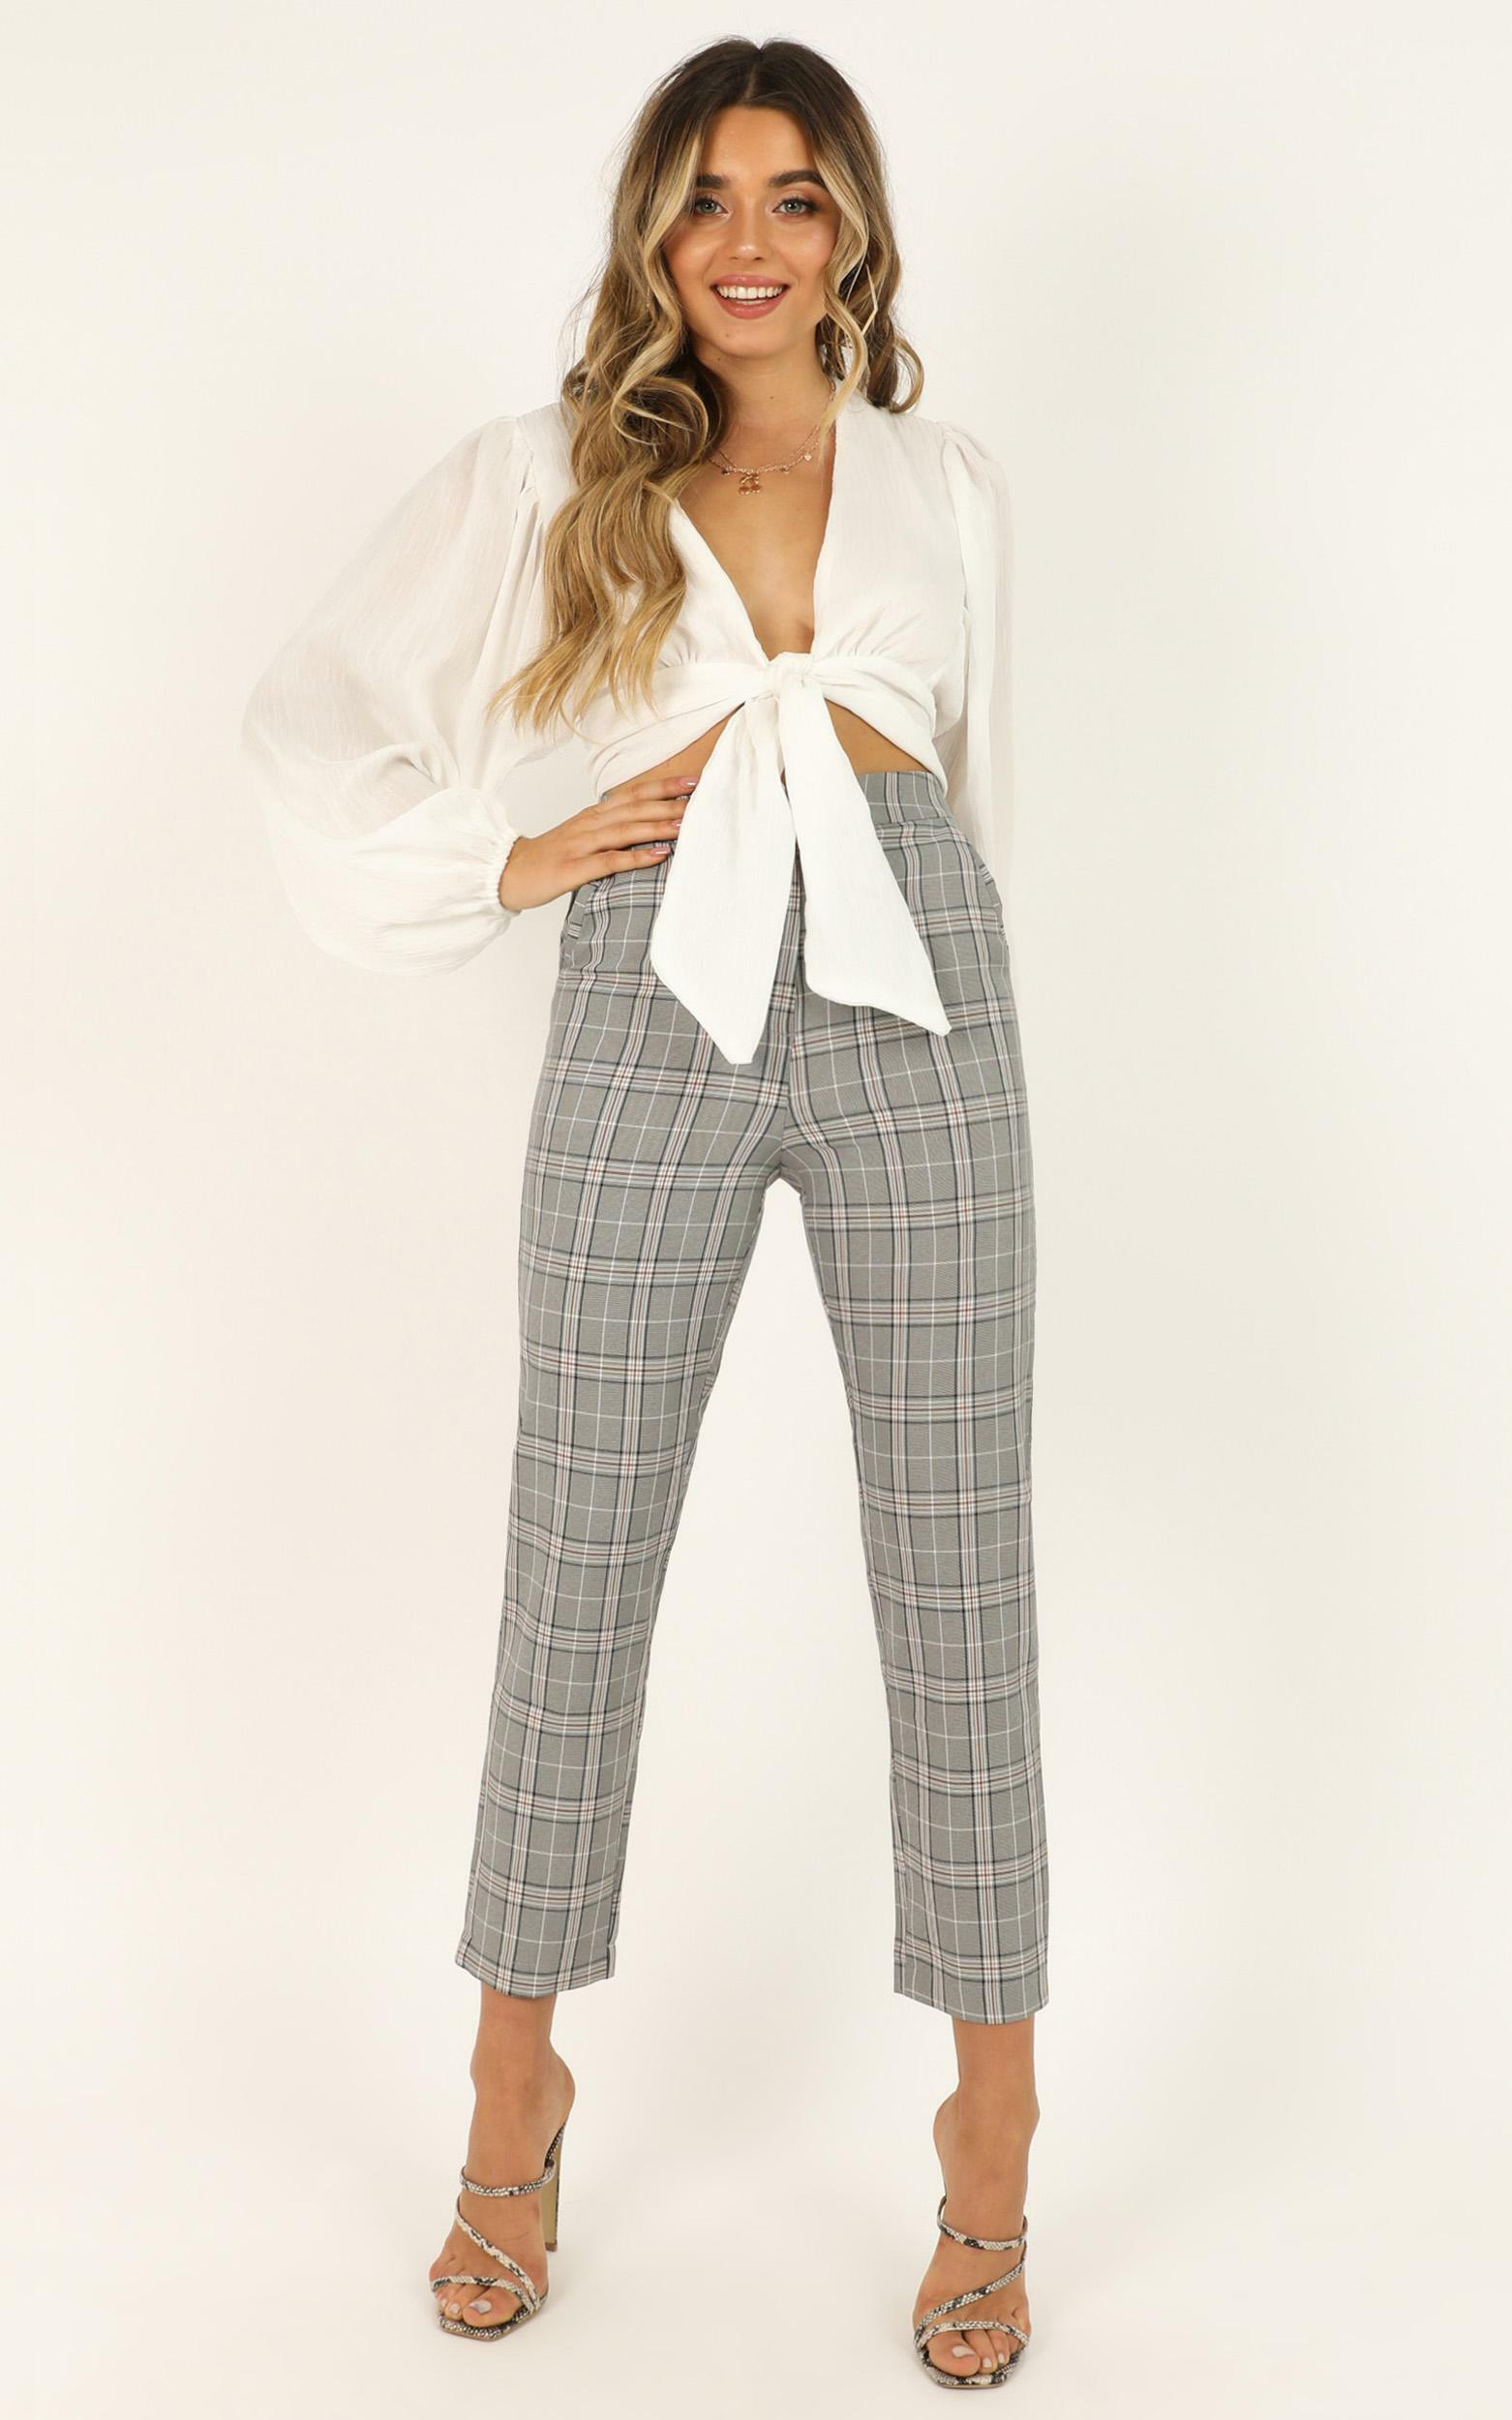 Modern Way Pants In grey check - 18 (XXXL), Grey, hi-res image number null